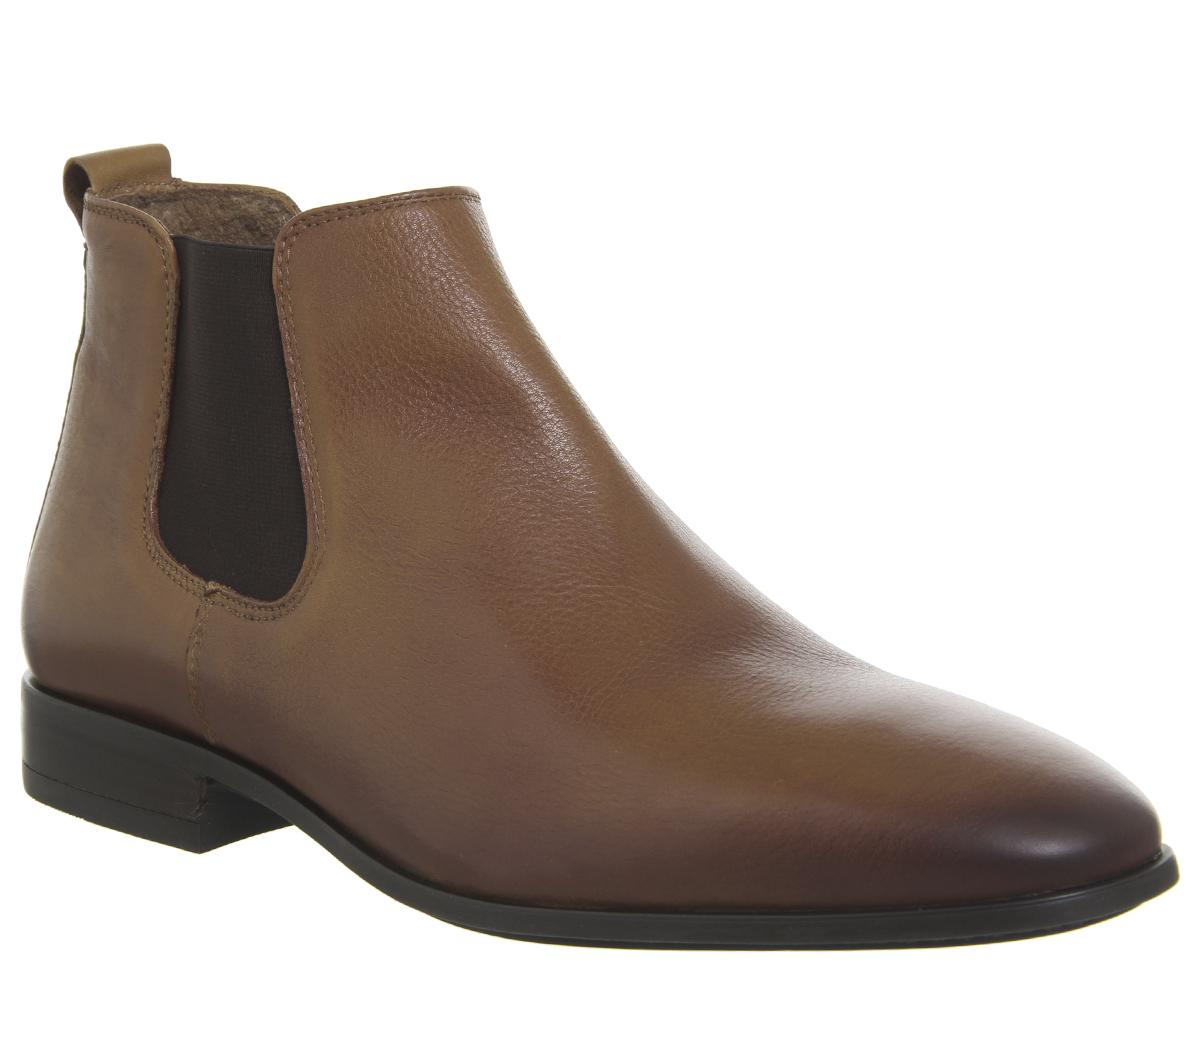 Intake Chelsea Boots